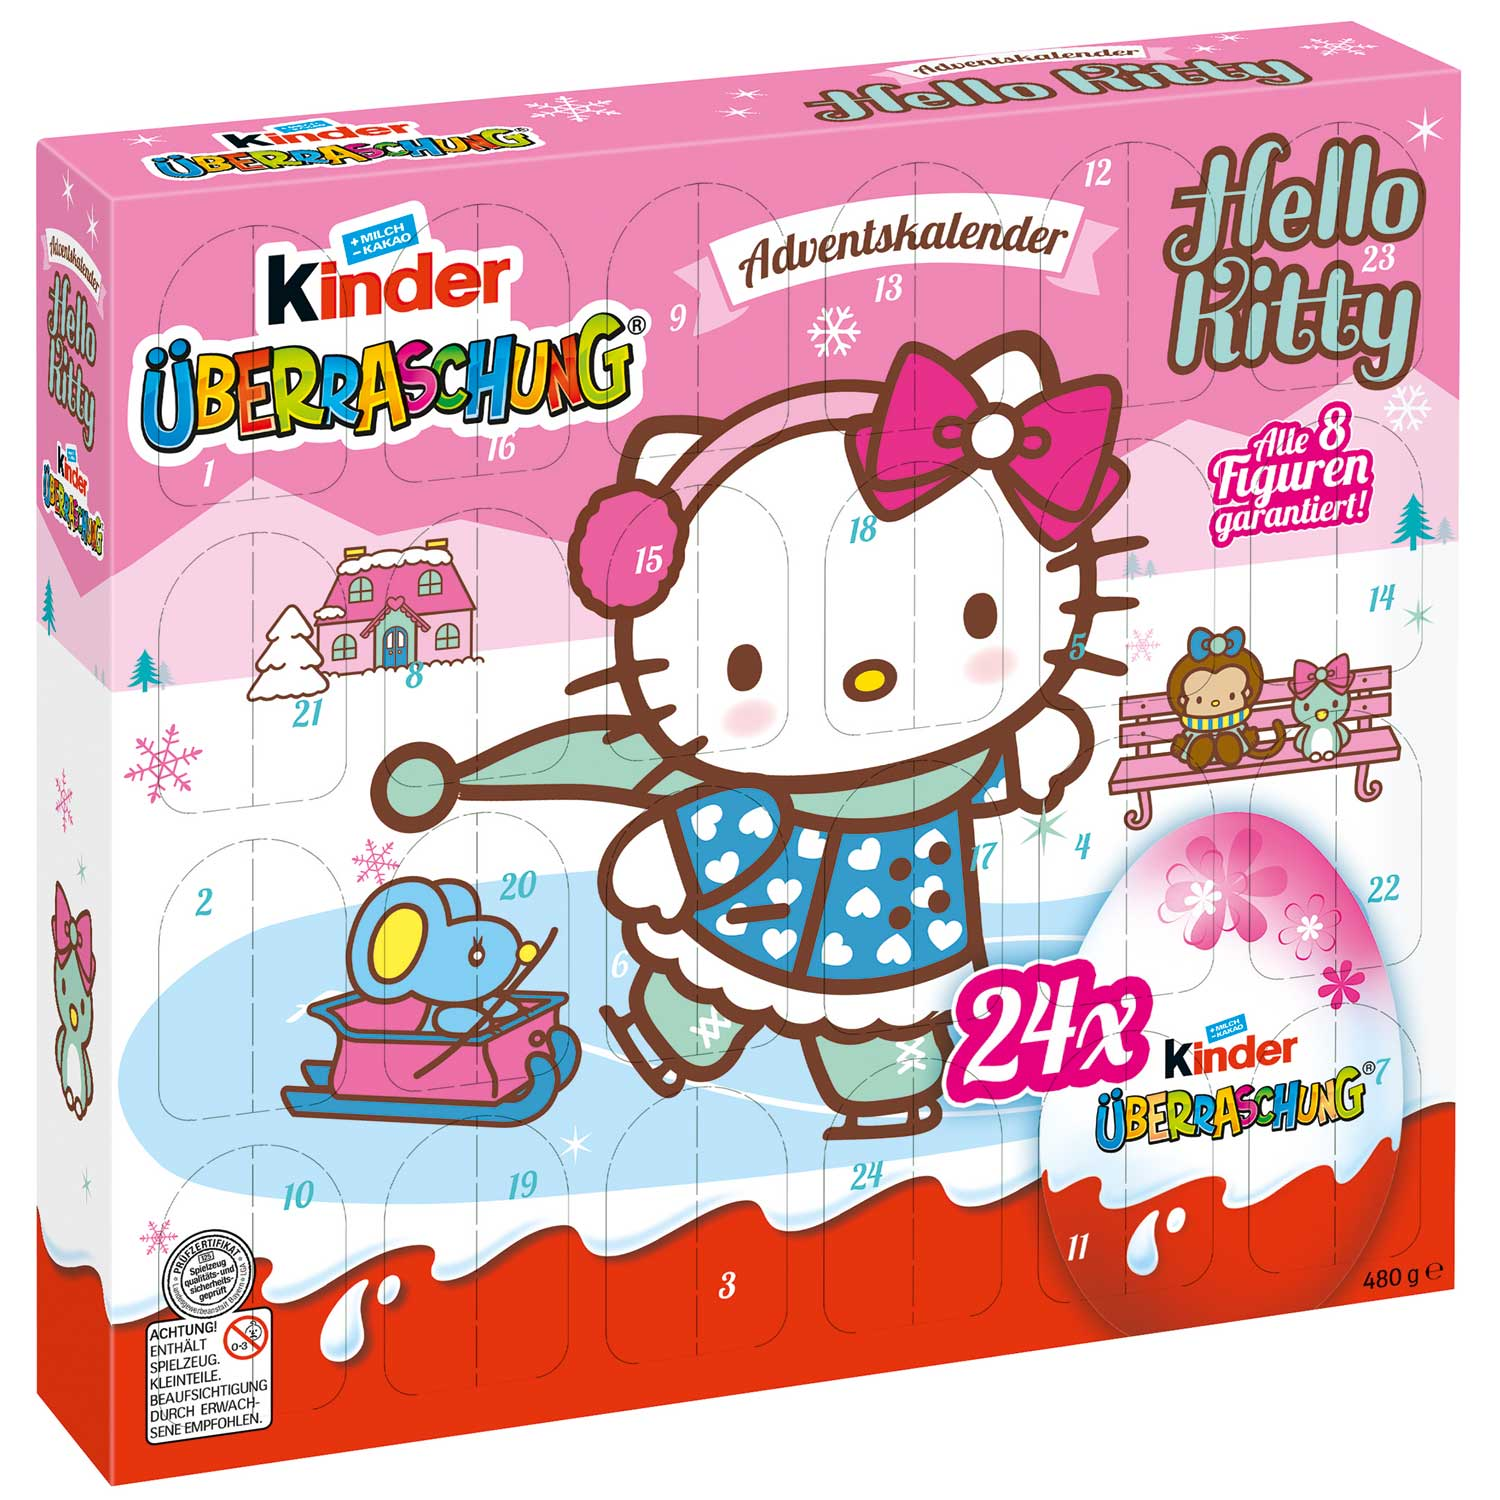 kinder berraschung adventskalender hello kitty online kaufen im world of sweets shop. Black Bedroom Furniture Sets. Home Design Ideas